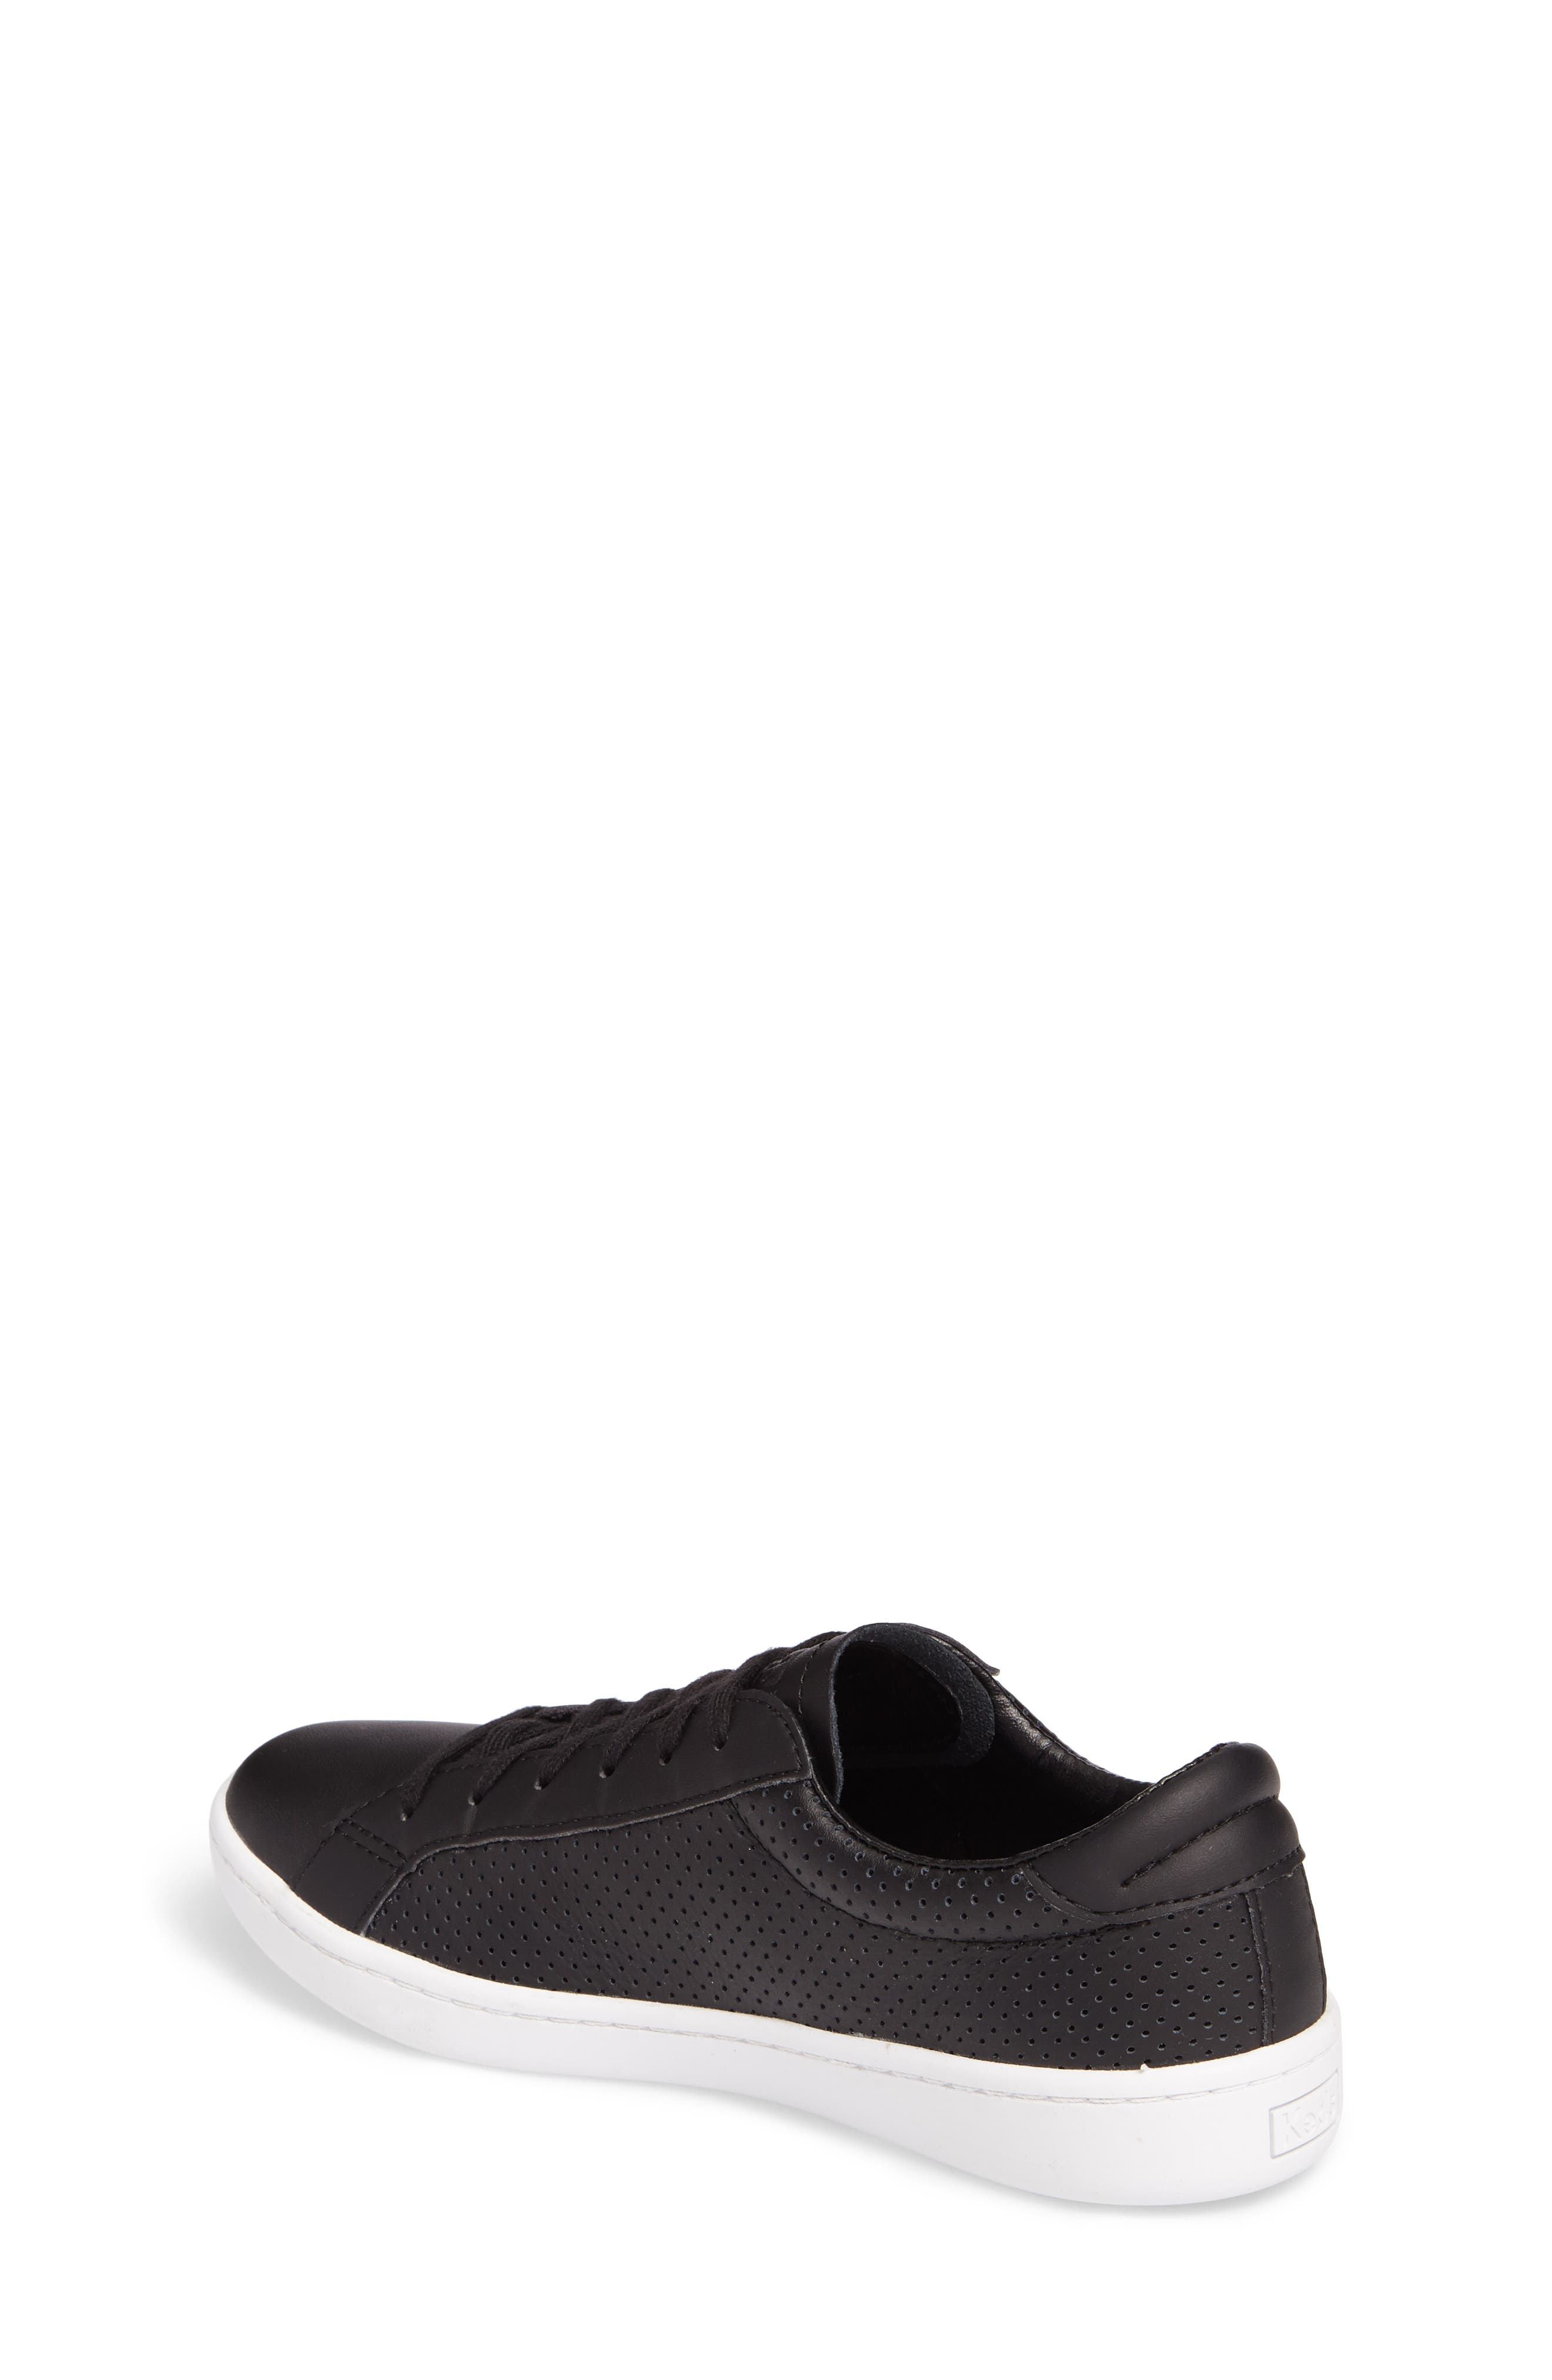 Ace Perforated Low Top Sneaker,                             Alternate thumbnail 2, color,                             001